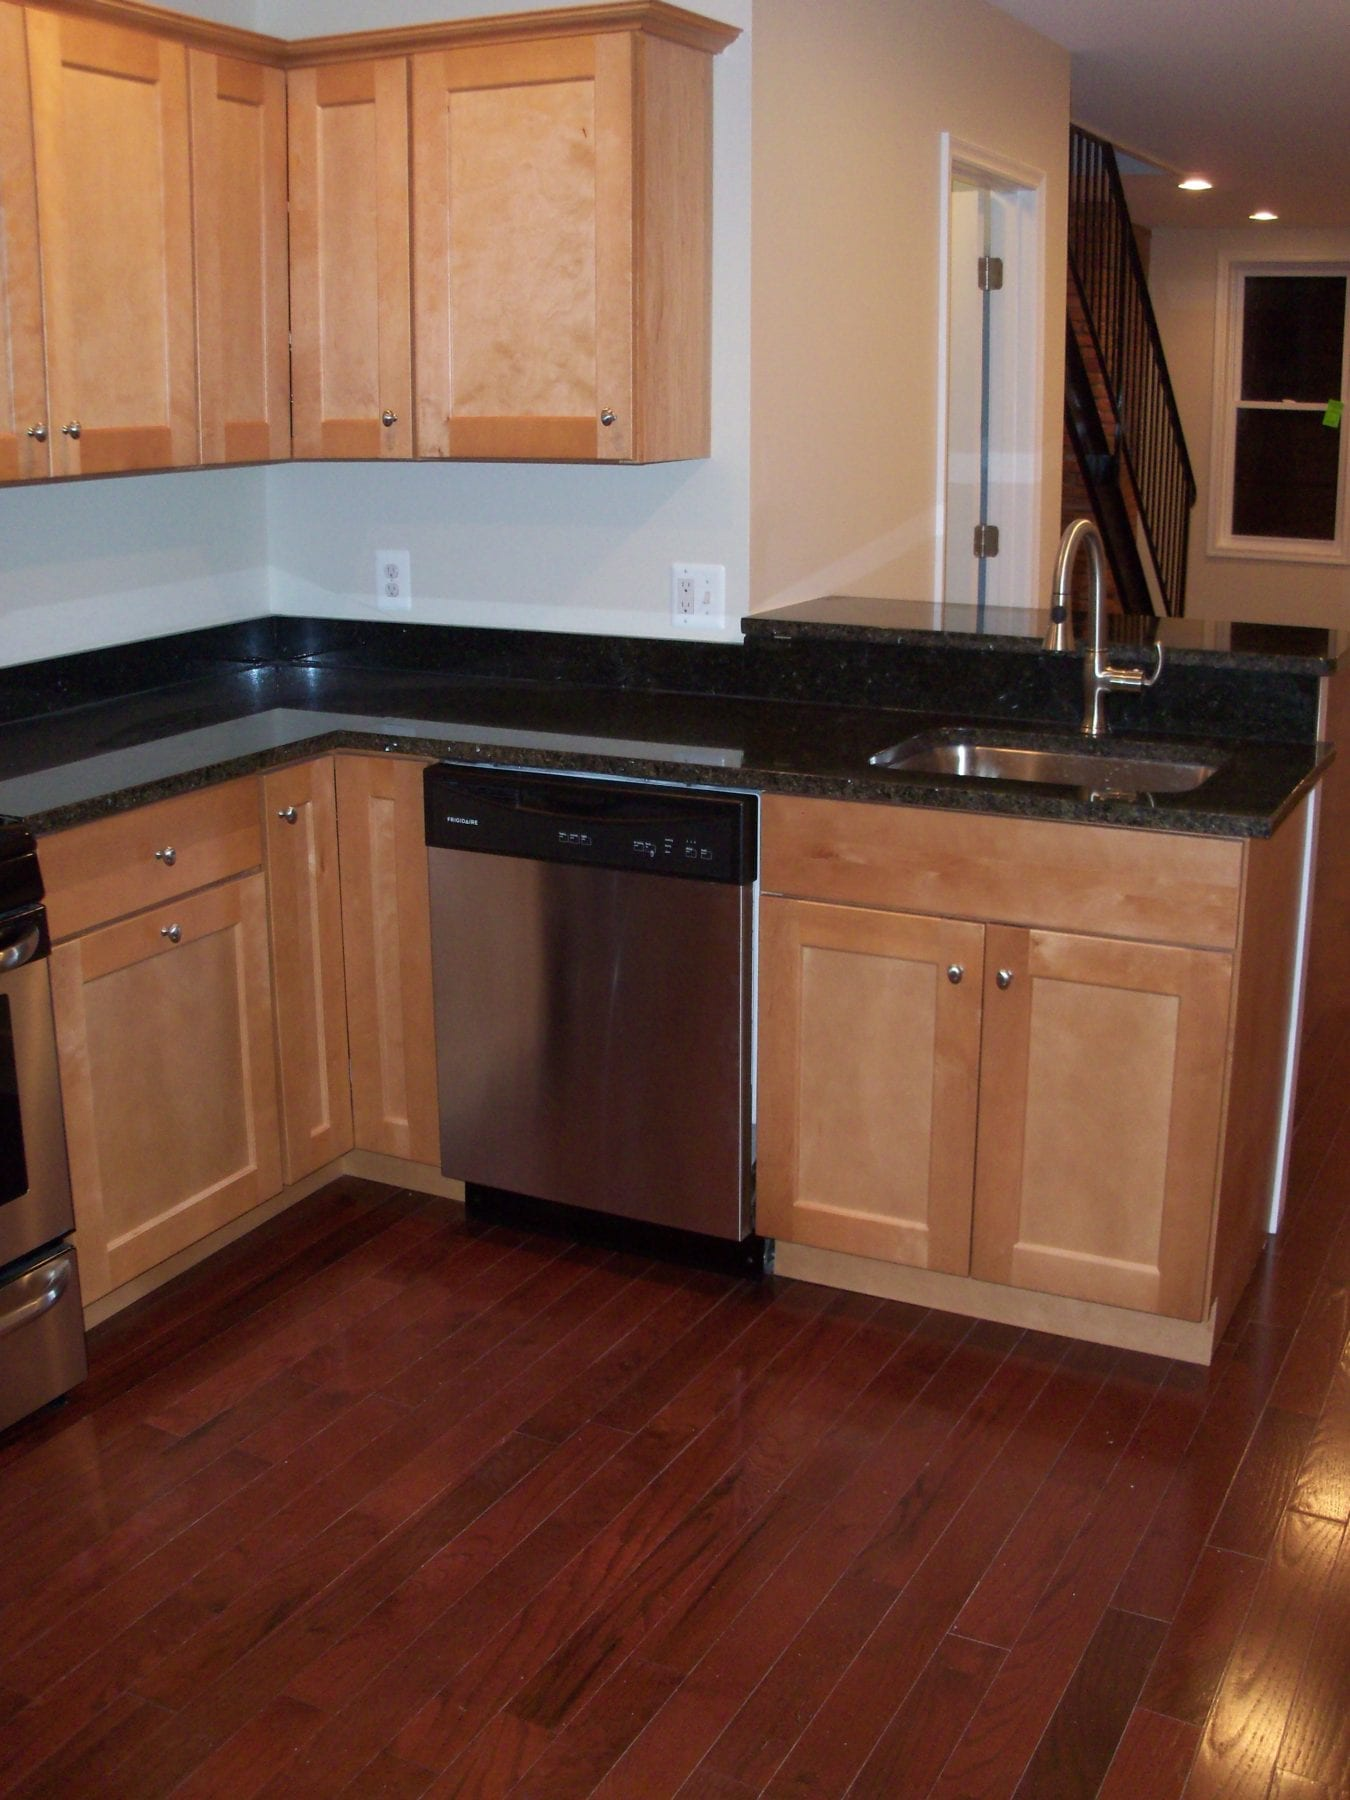 complete home remodeling in federal hill baltimore kitchen cabinets and granite - Kitchen Cabinets Baltimore